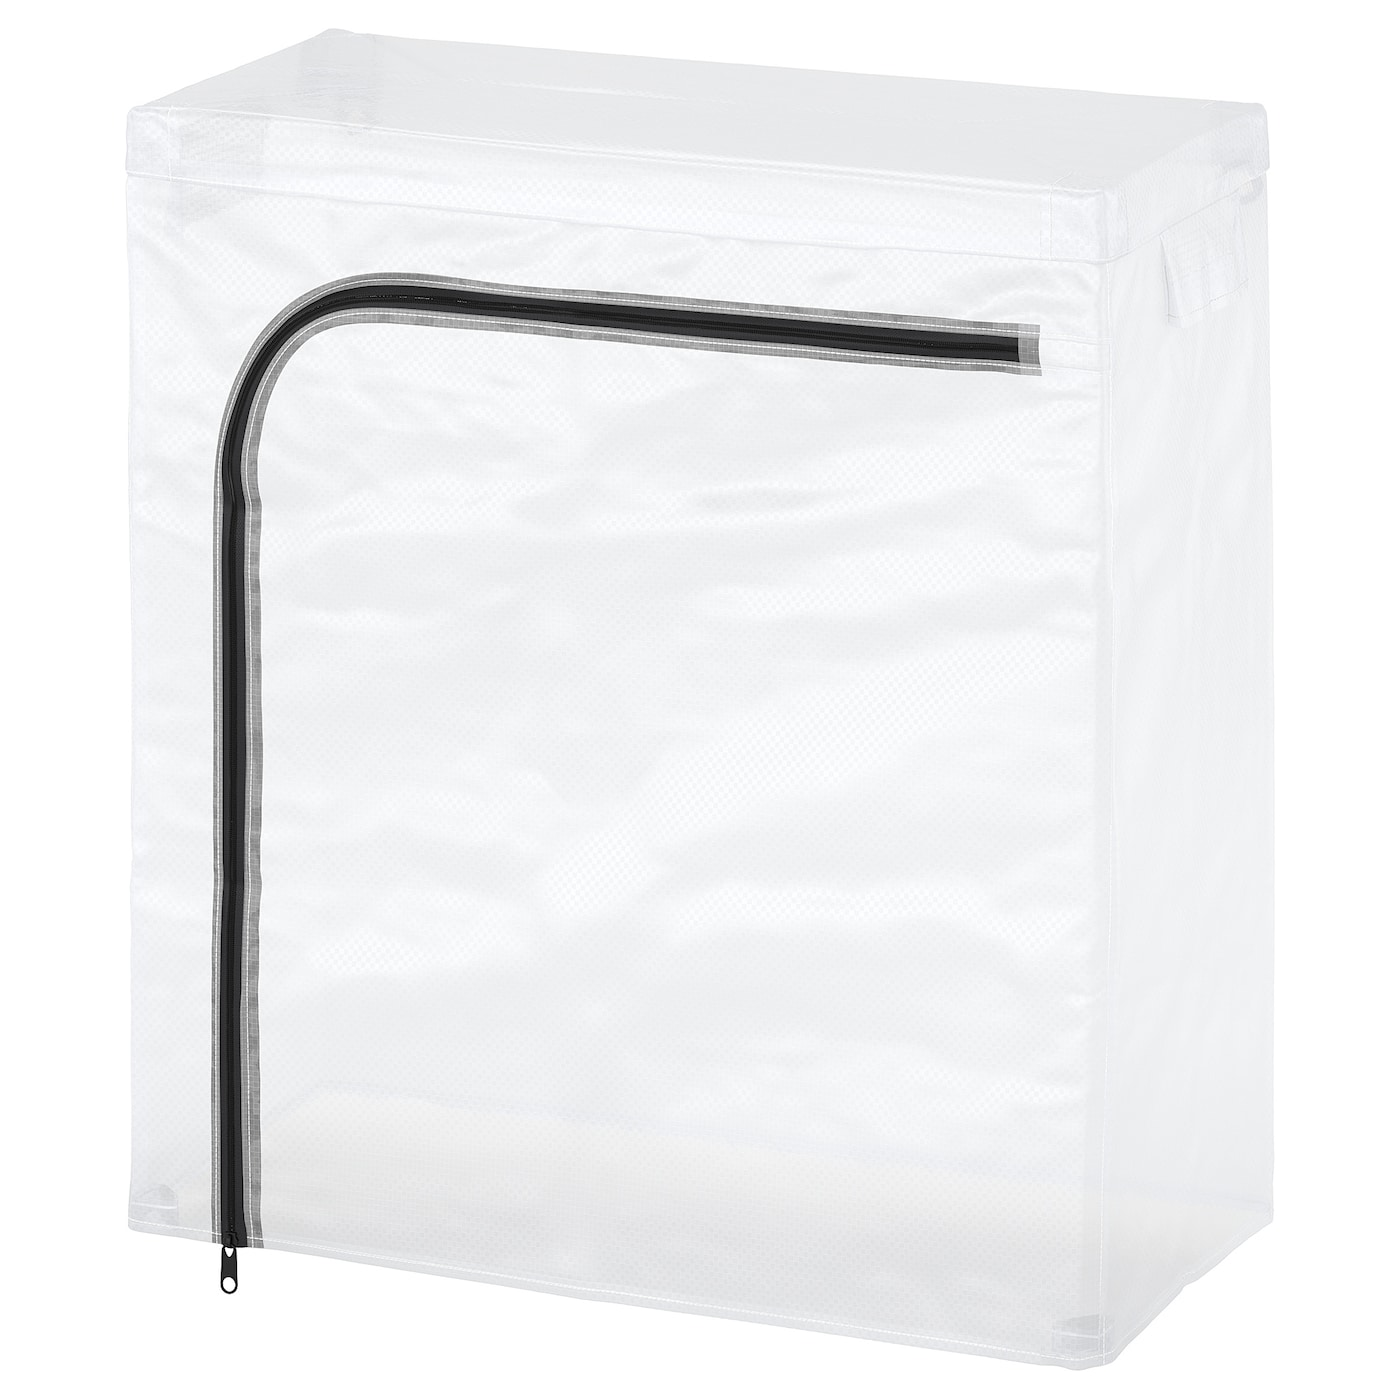 IKEA HYLLIS cover Suitable for both indoor and outdoor use. The cover is easy to put on and remove.